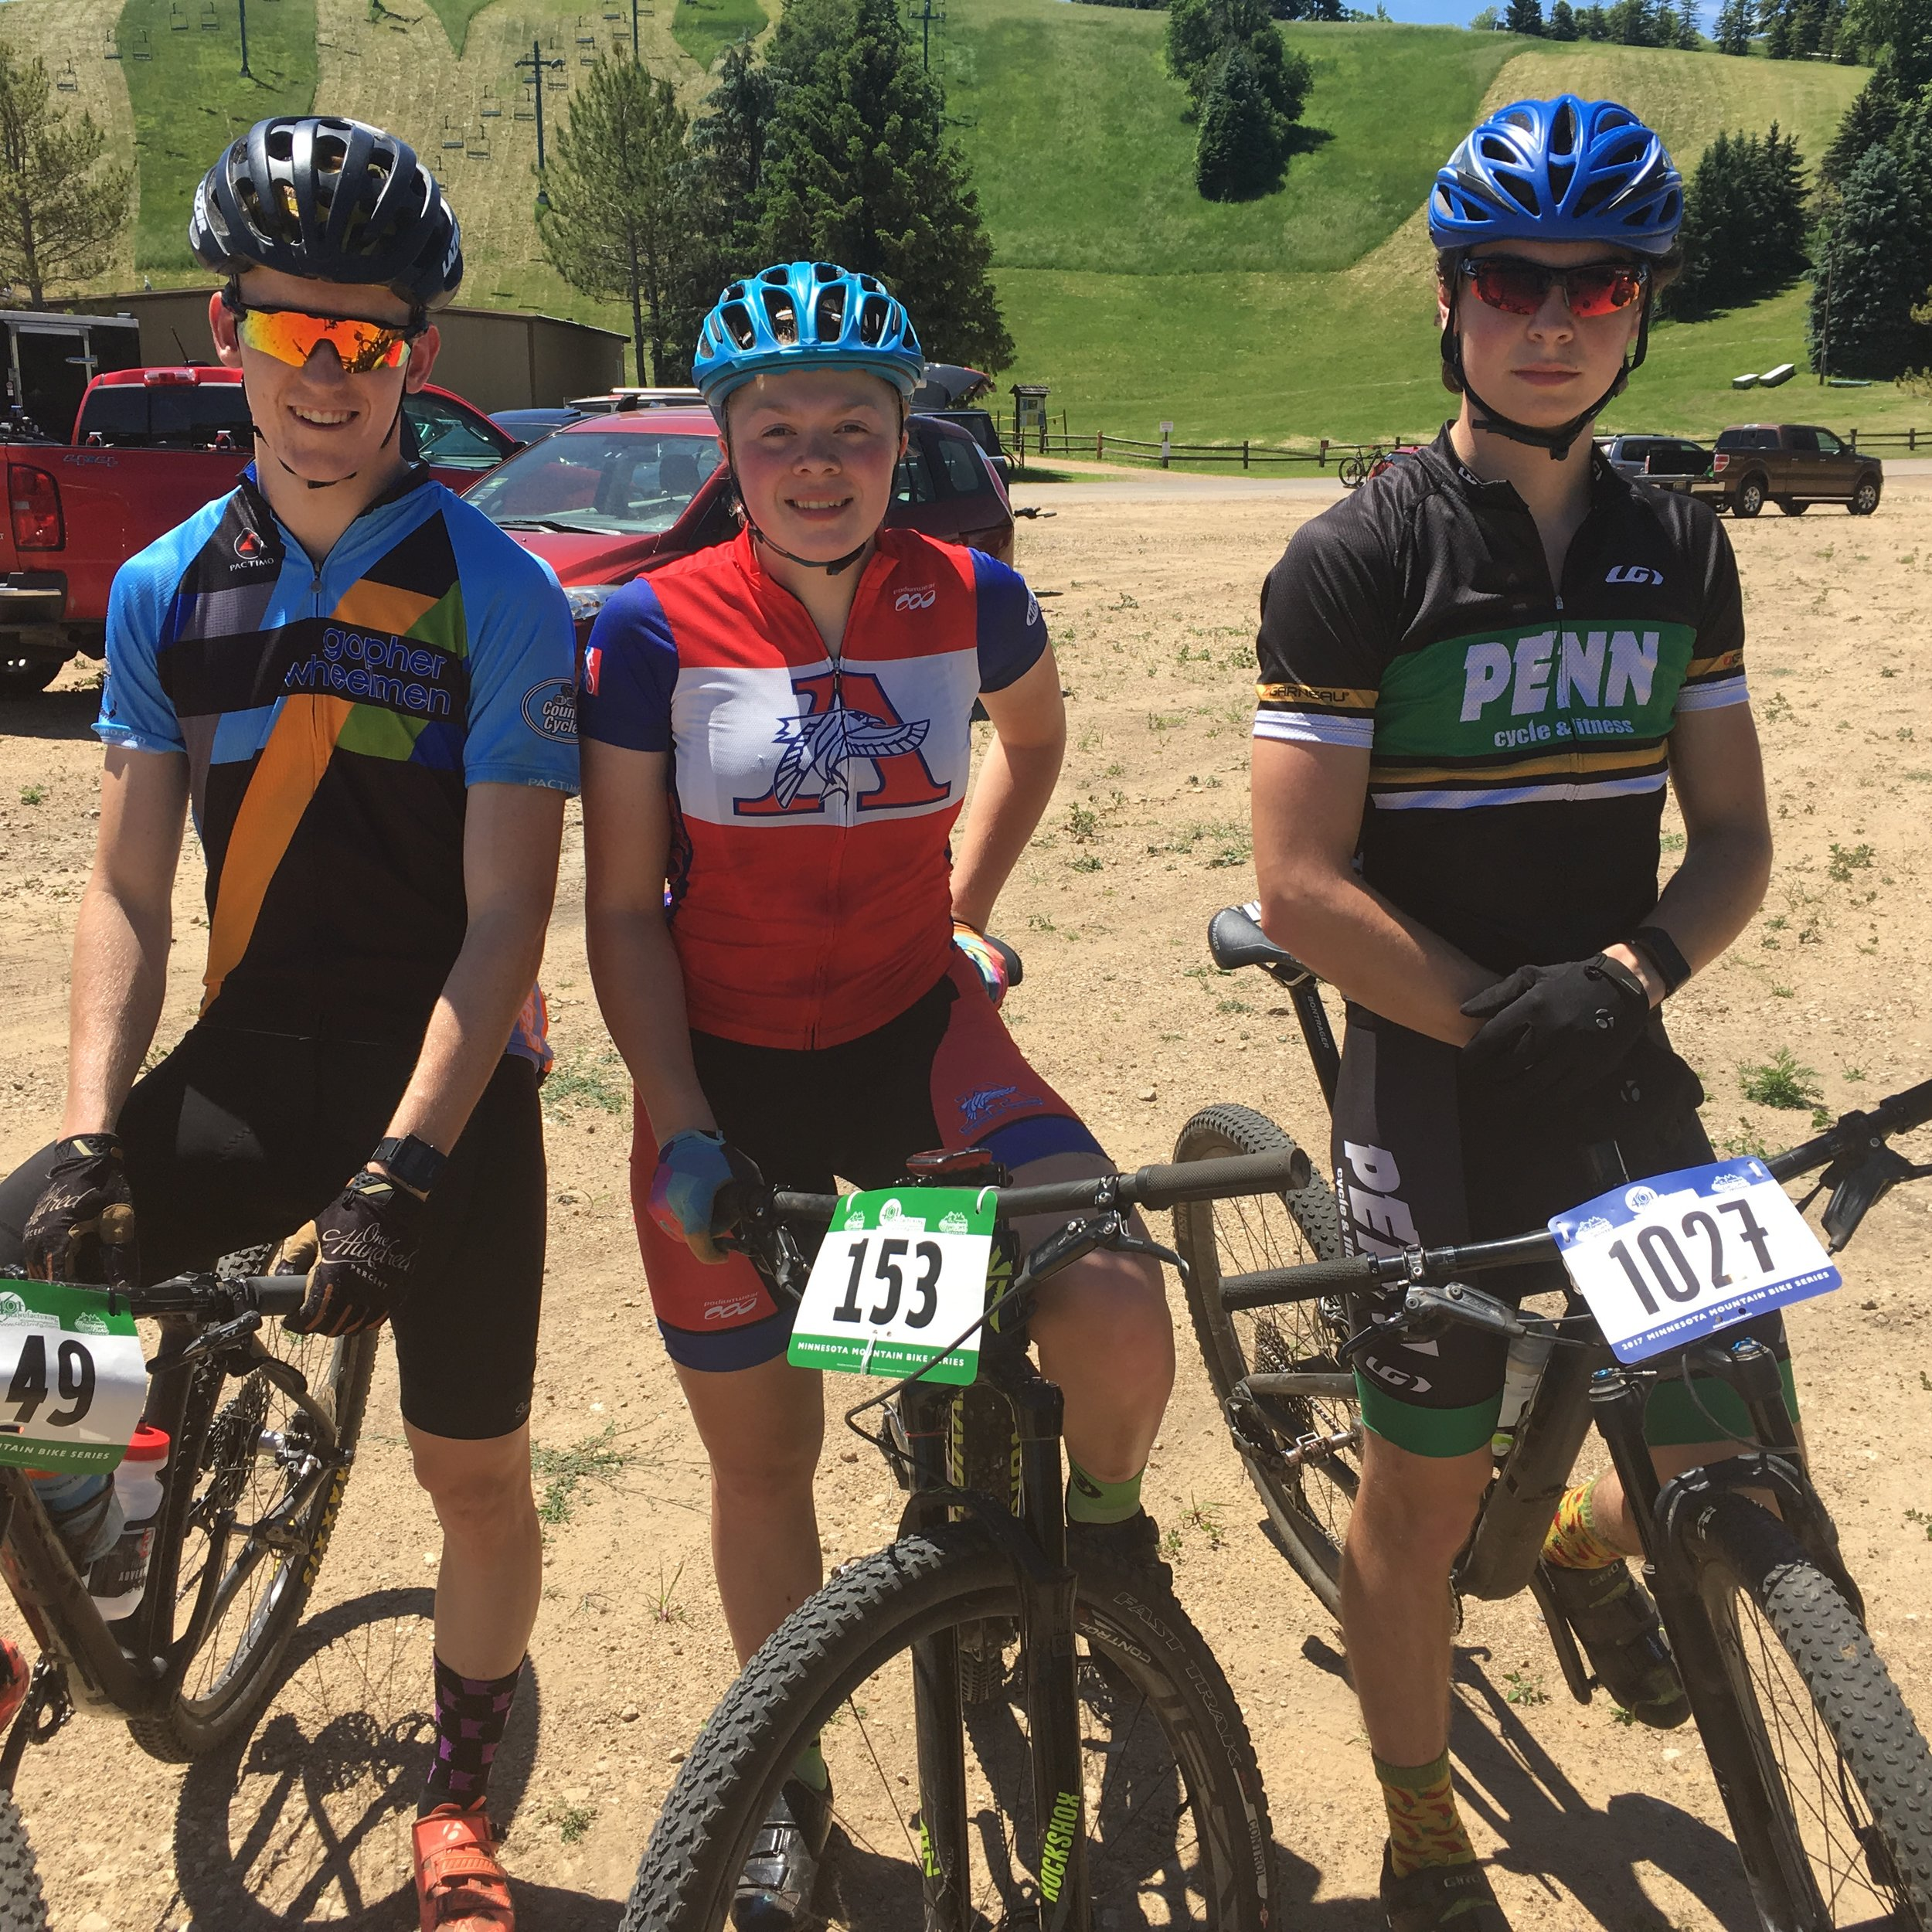 WHO: - Student-athletes looking to participate in cycling training activities that will enhance their performance in road, mountain, and cyclocross events and excursions, both locally and nationally.